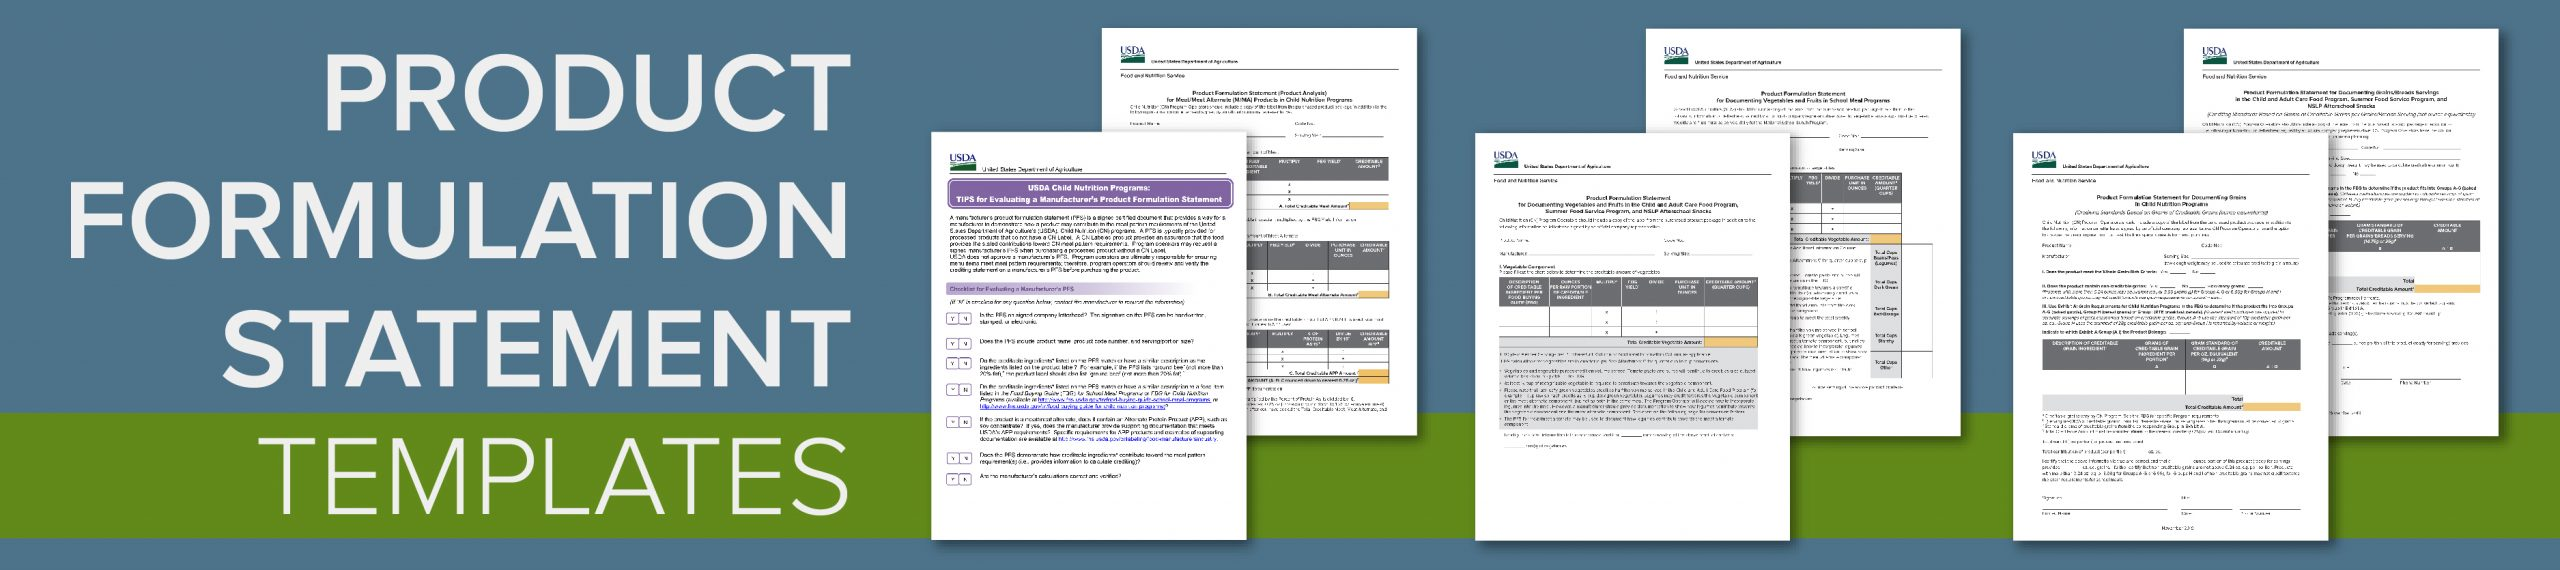 USDA Product Formulation Statement Templates